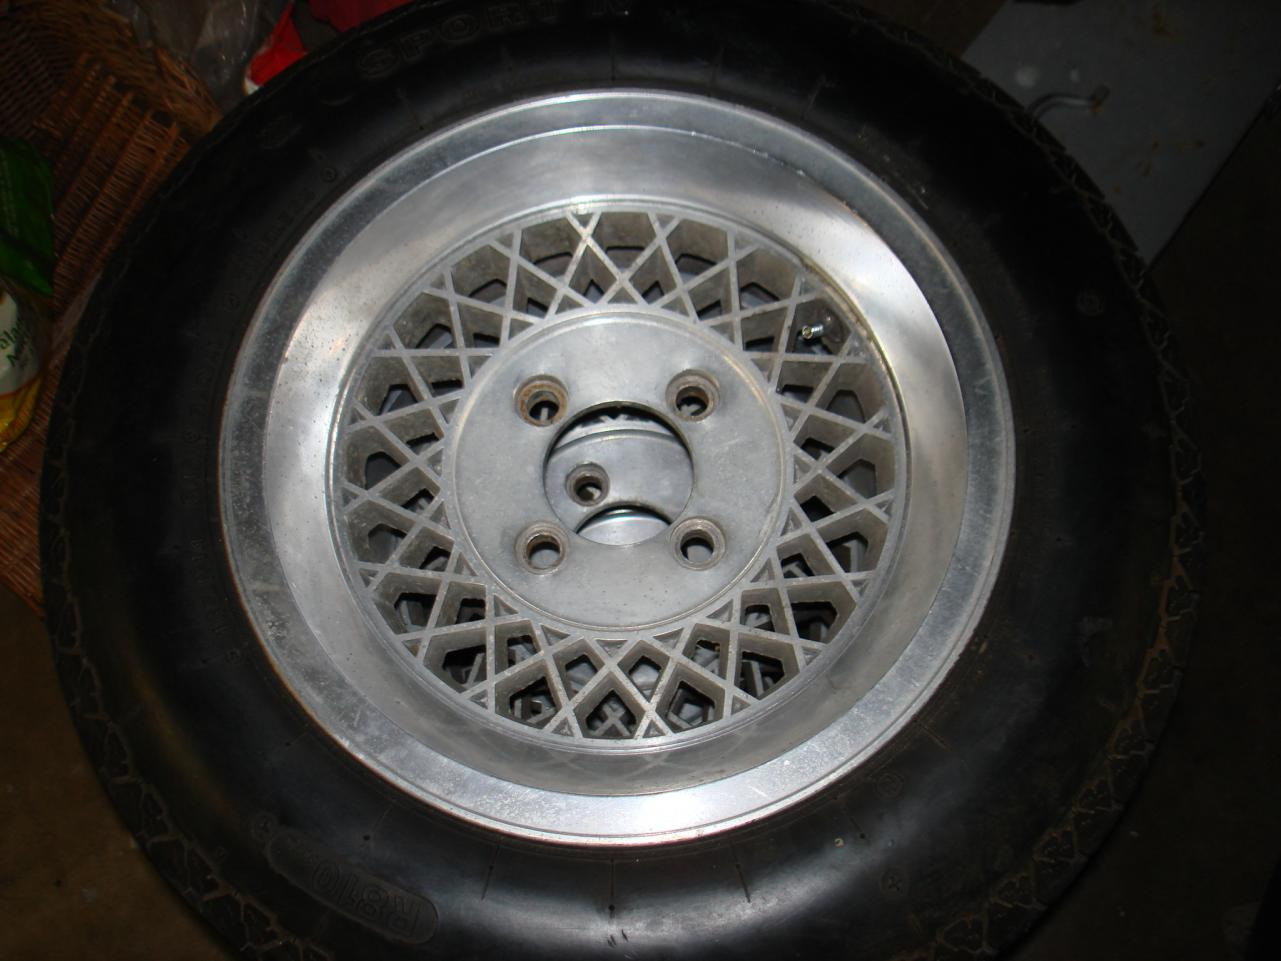 Used Car Rims >> Looking for Appliance Wheel center caps - Wheels, Tires and Brakes - The Classic Zcar Club